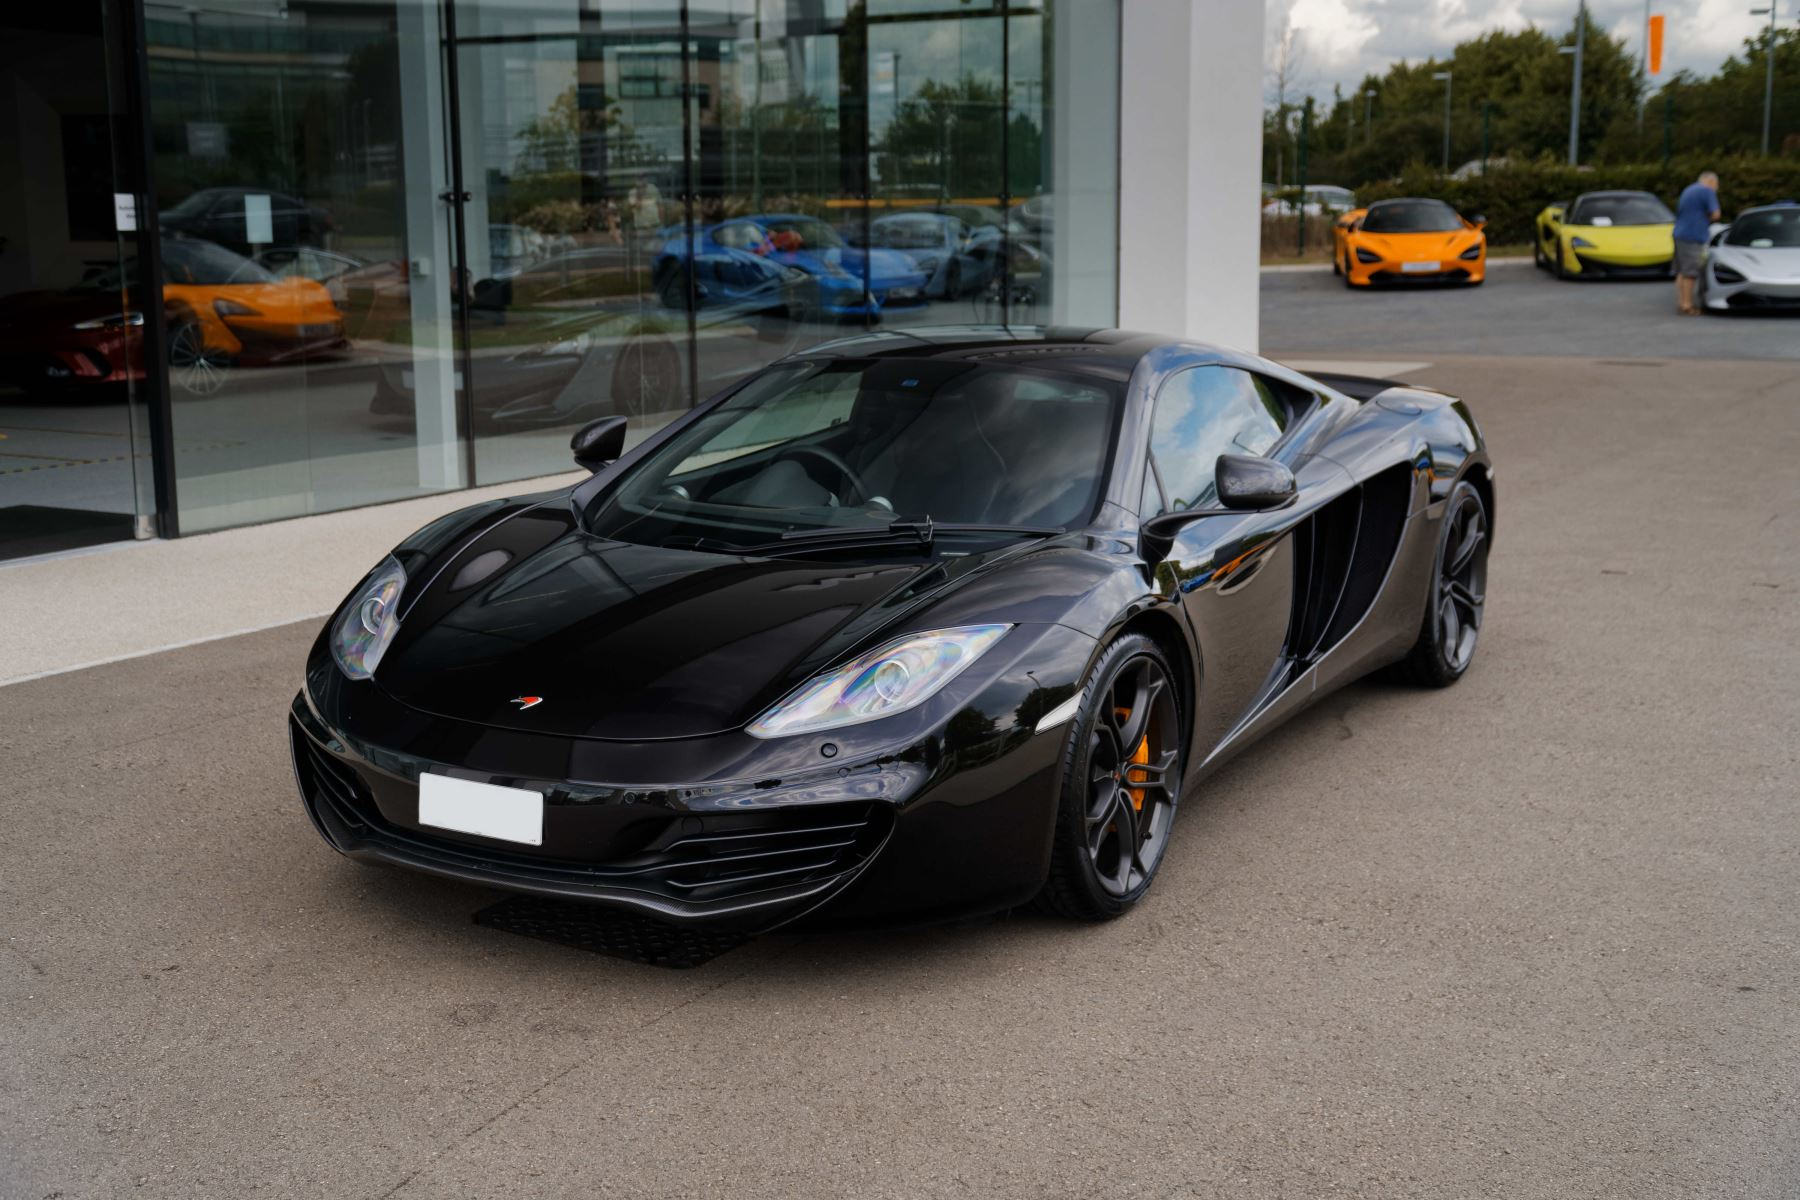 McLaren MP4-12C 3.8 SSG COUPE Automatic 2 door Coupe (2012)